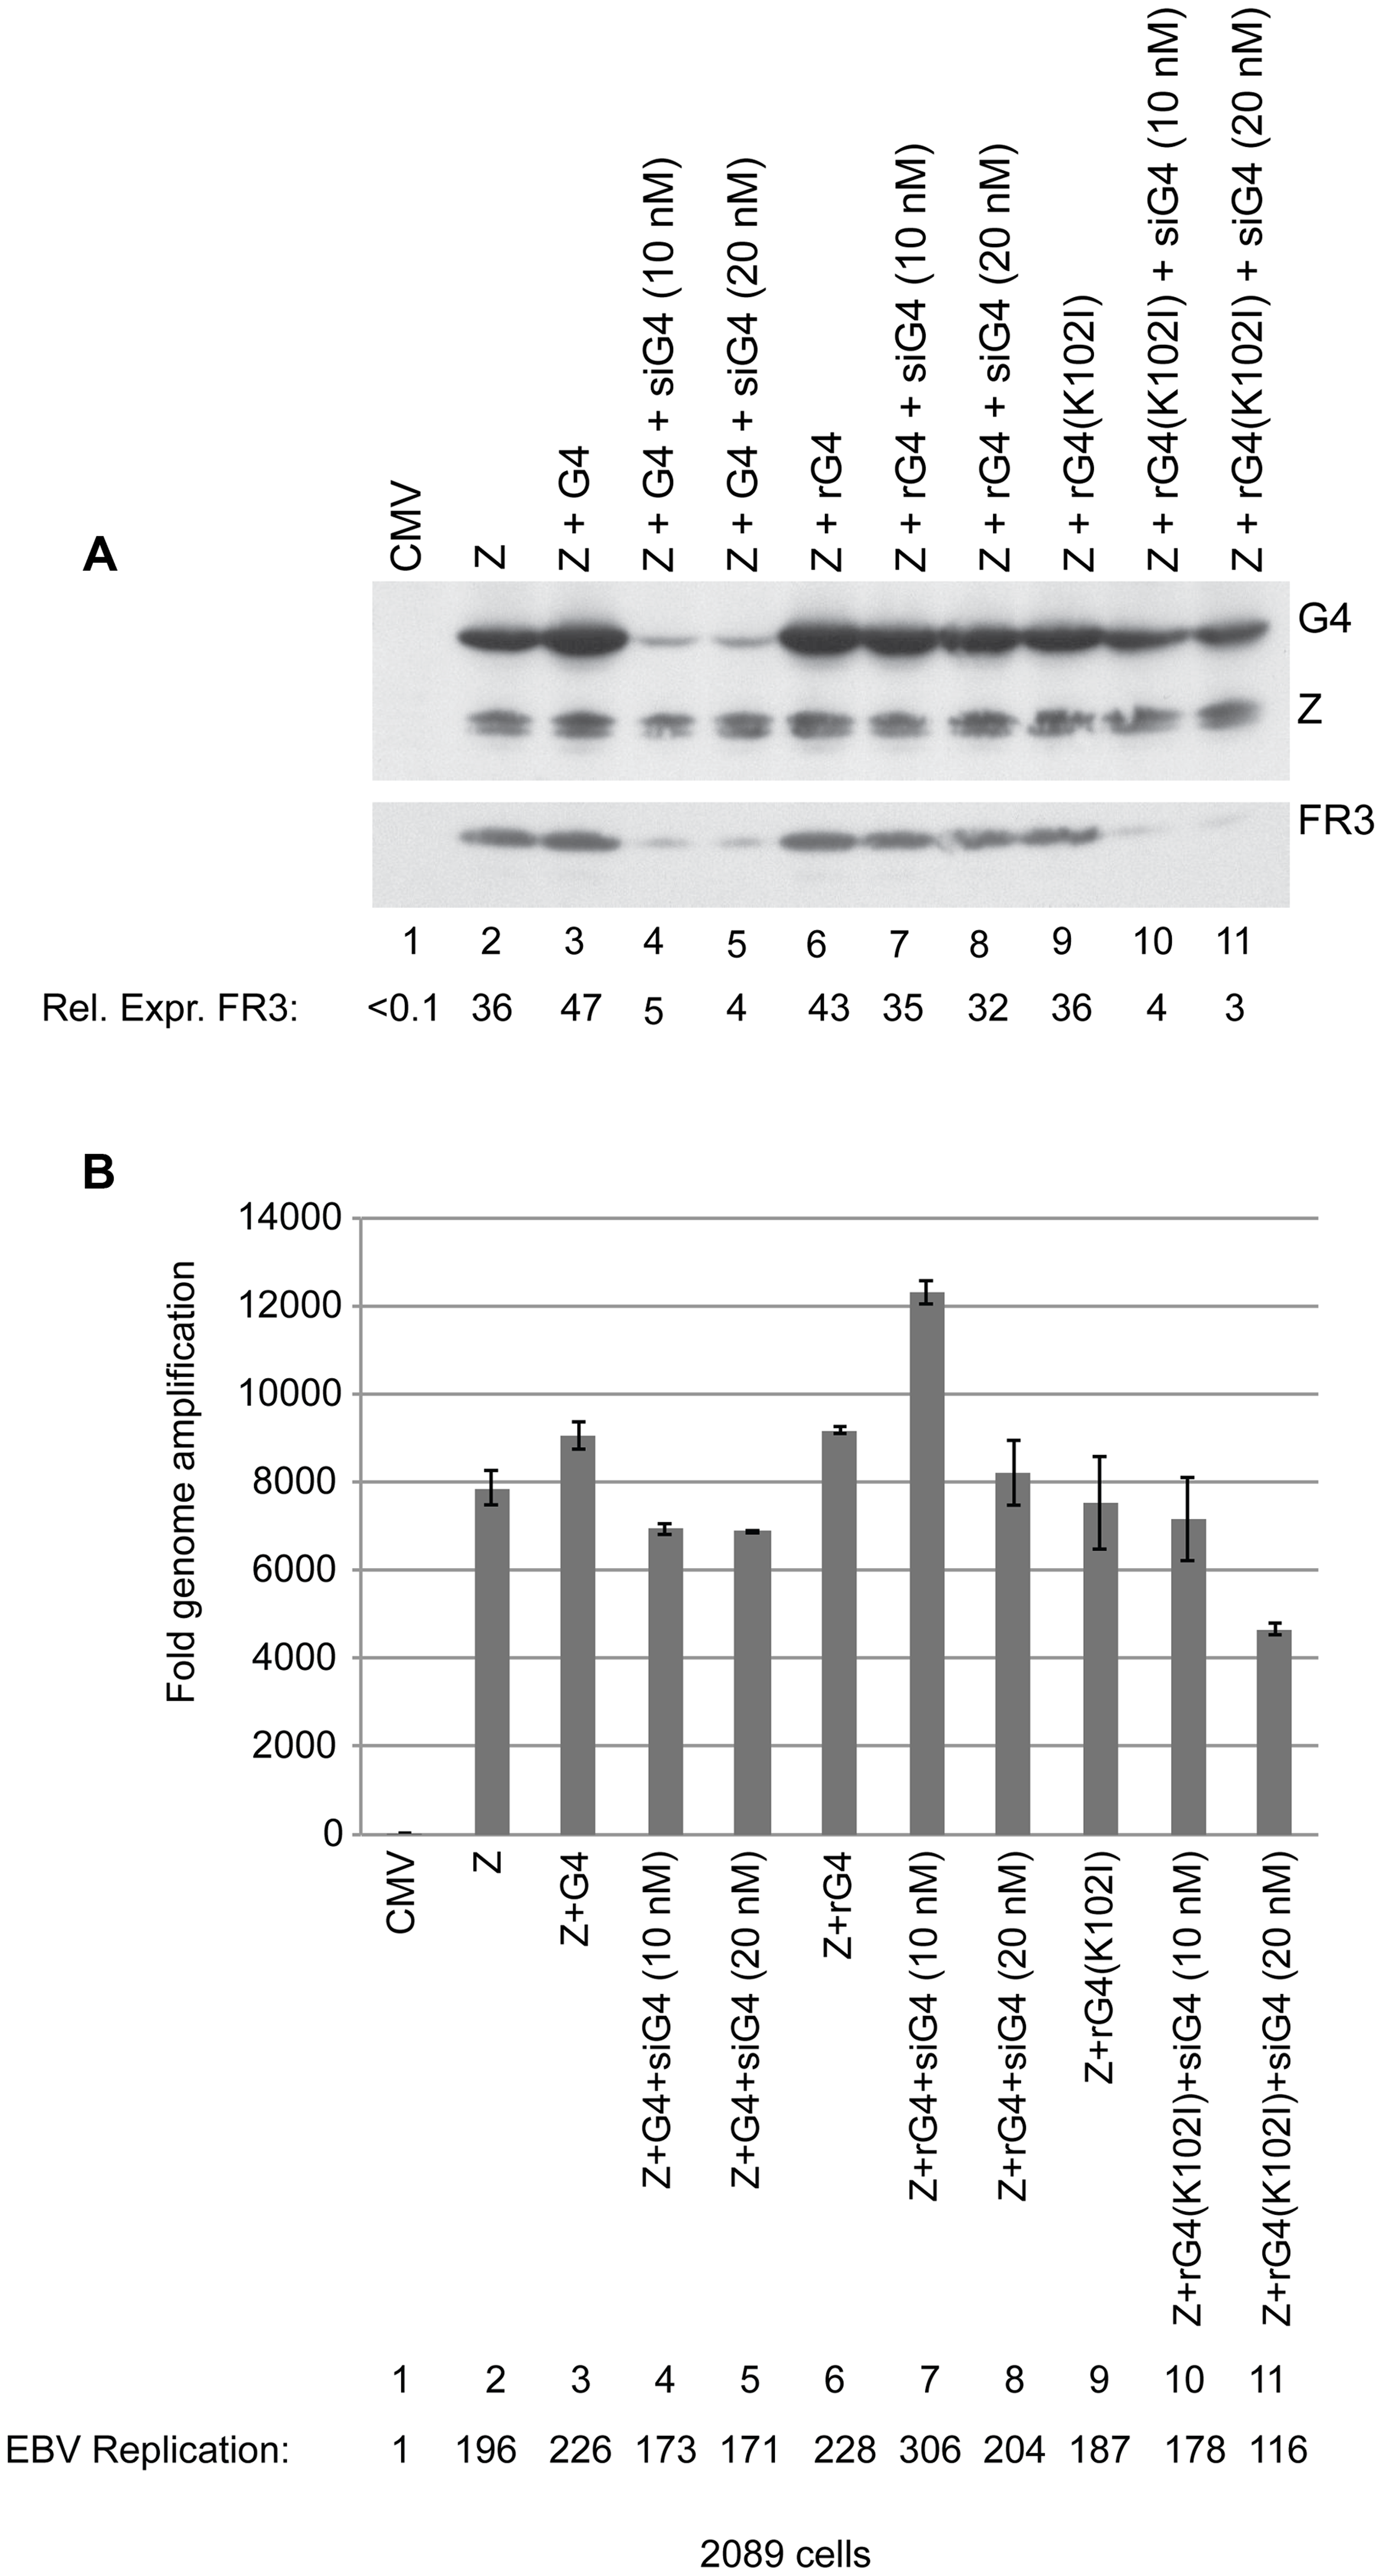 Silent mutations in BGLF4 override the effect of siG4 on late gene expression.